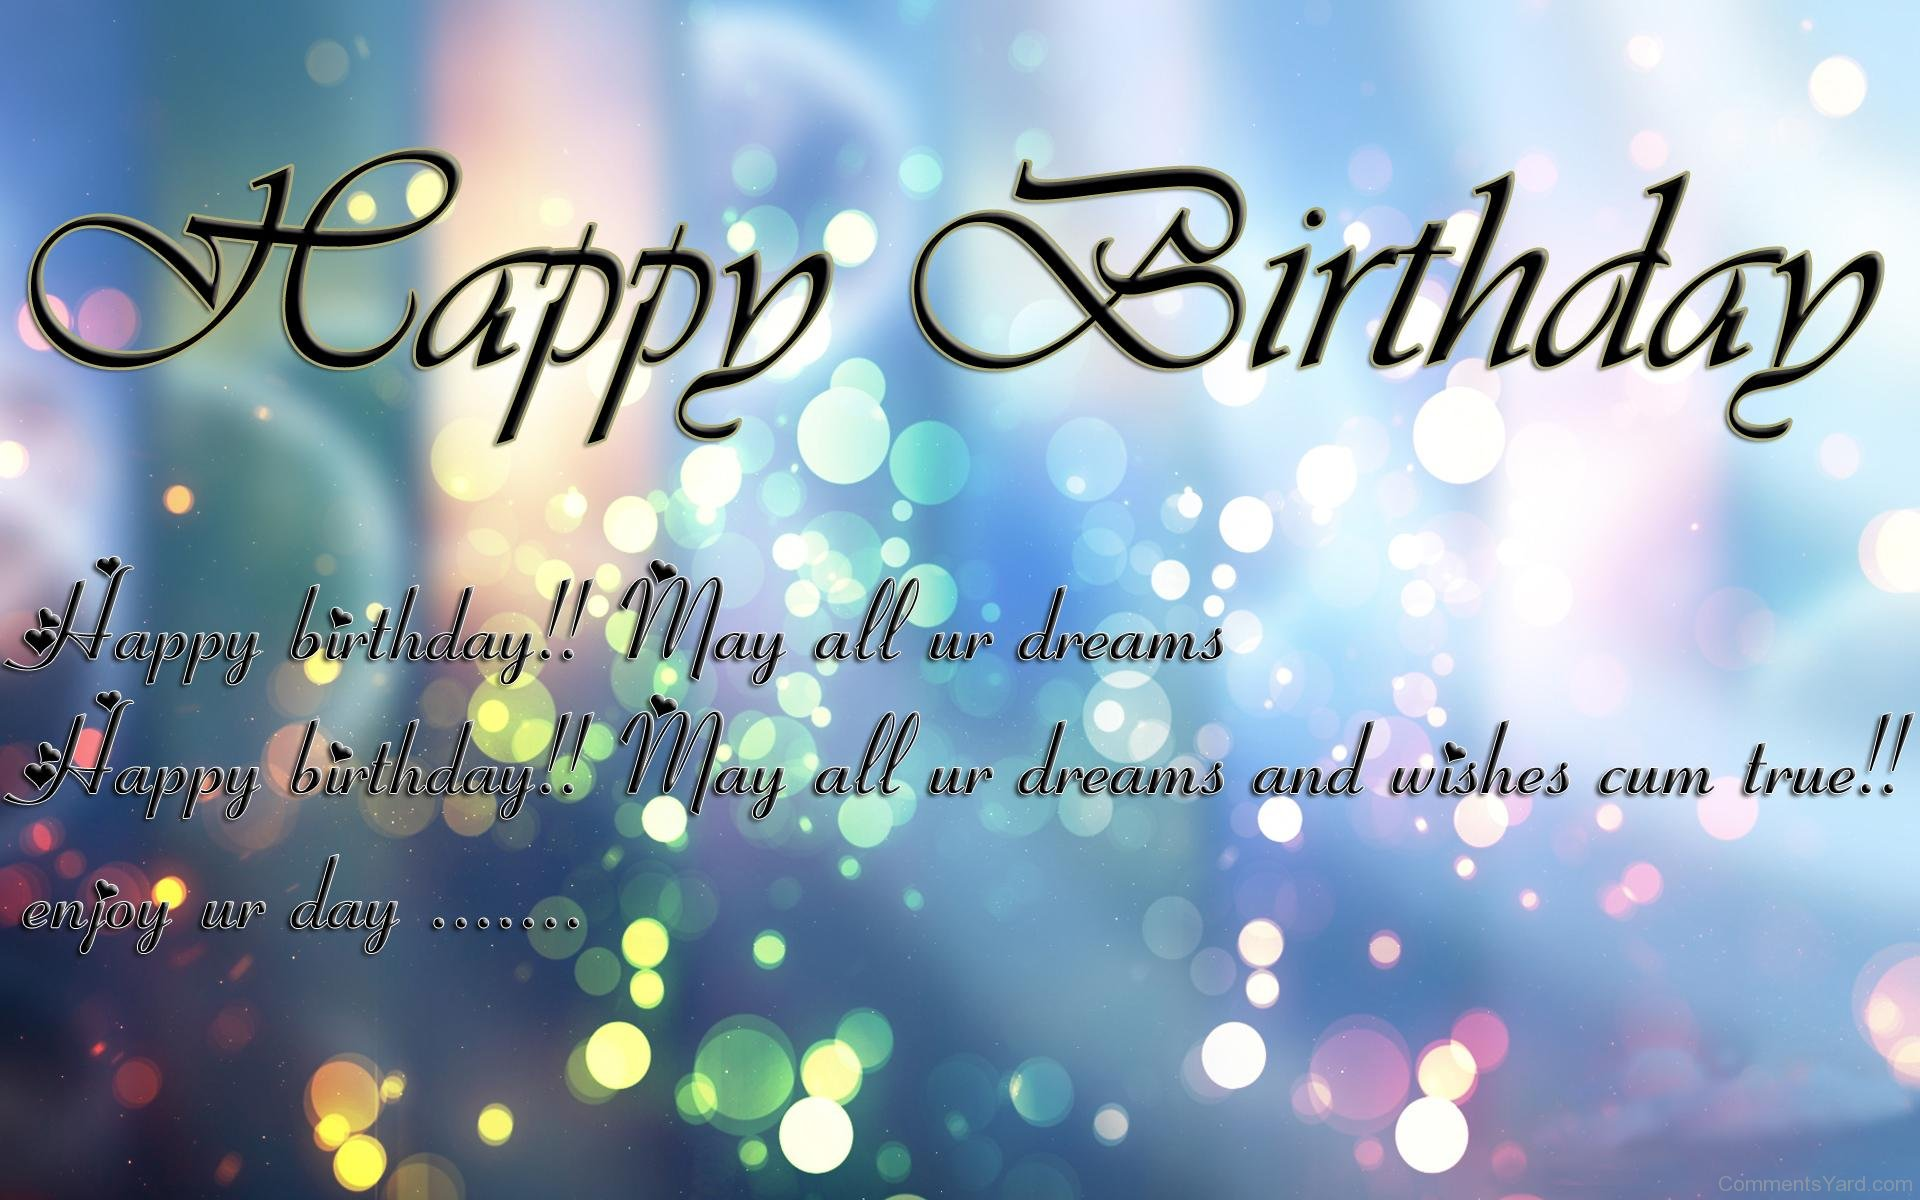 happy birthday picture comments ; Happy-Birthday-May-All-Ur-Dreams